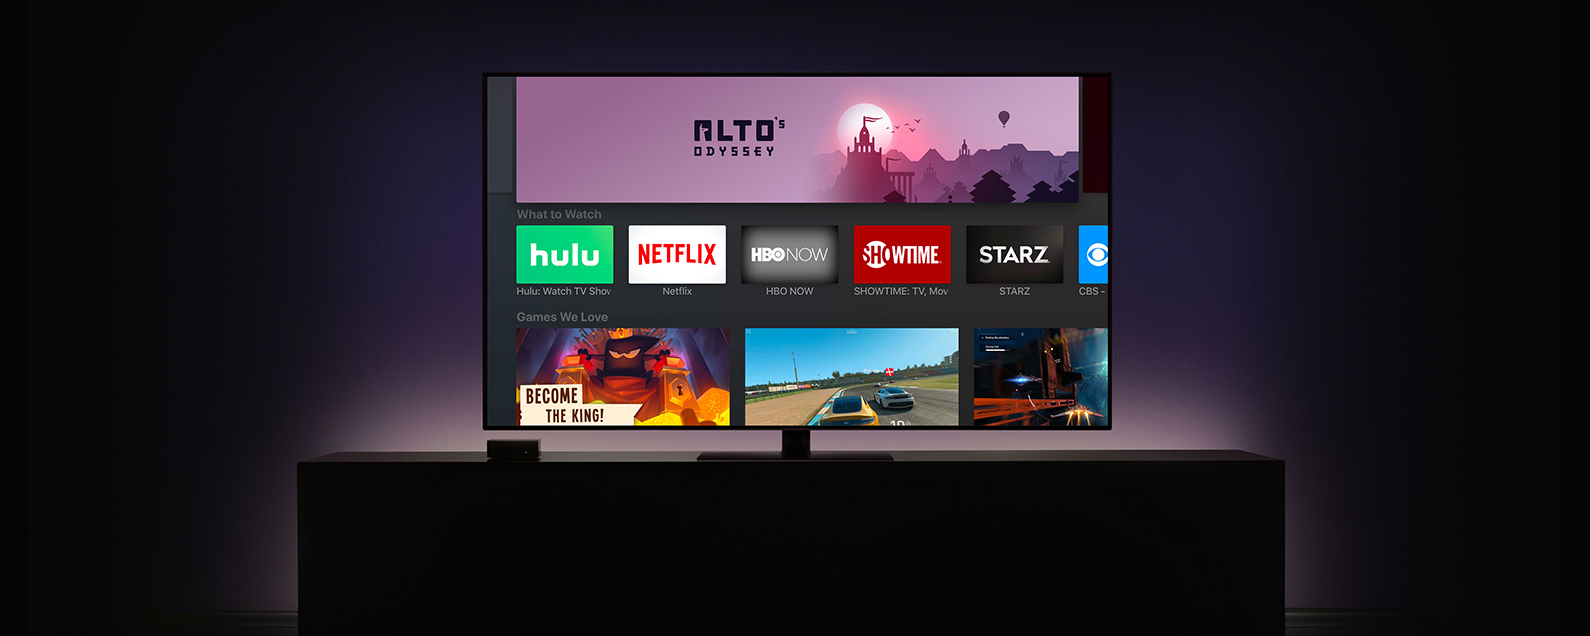 Apple TV Apps: How to Find & Download New Apps from the App